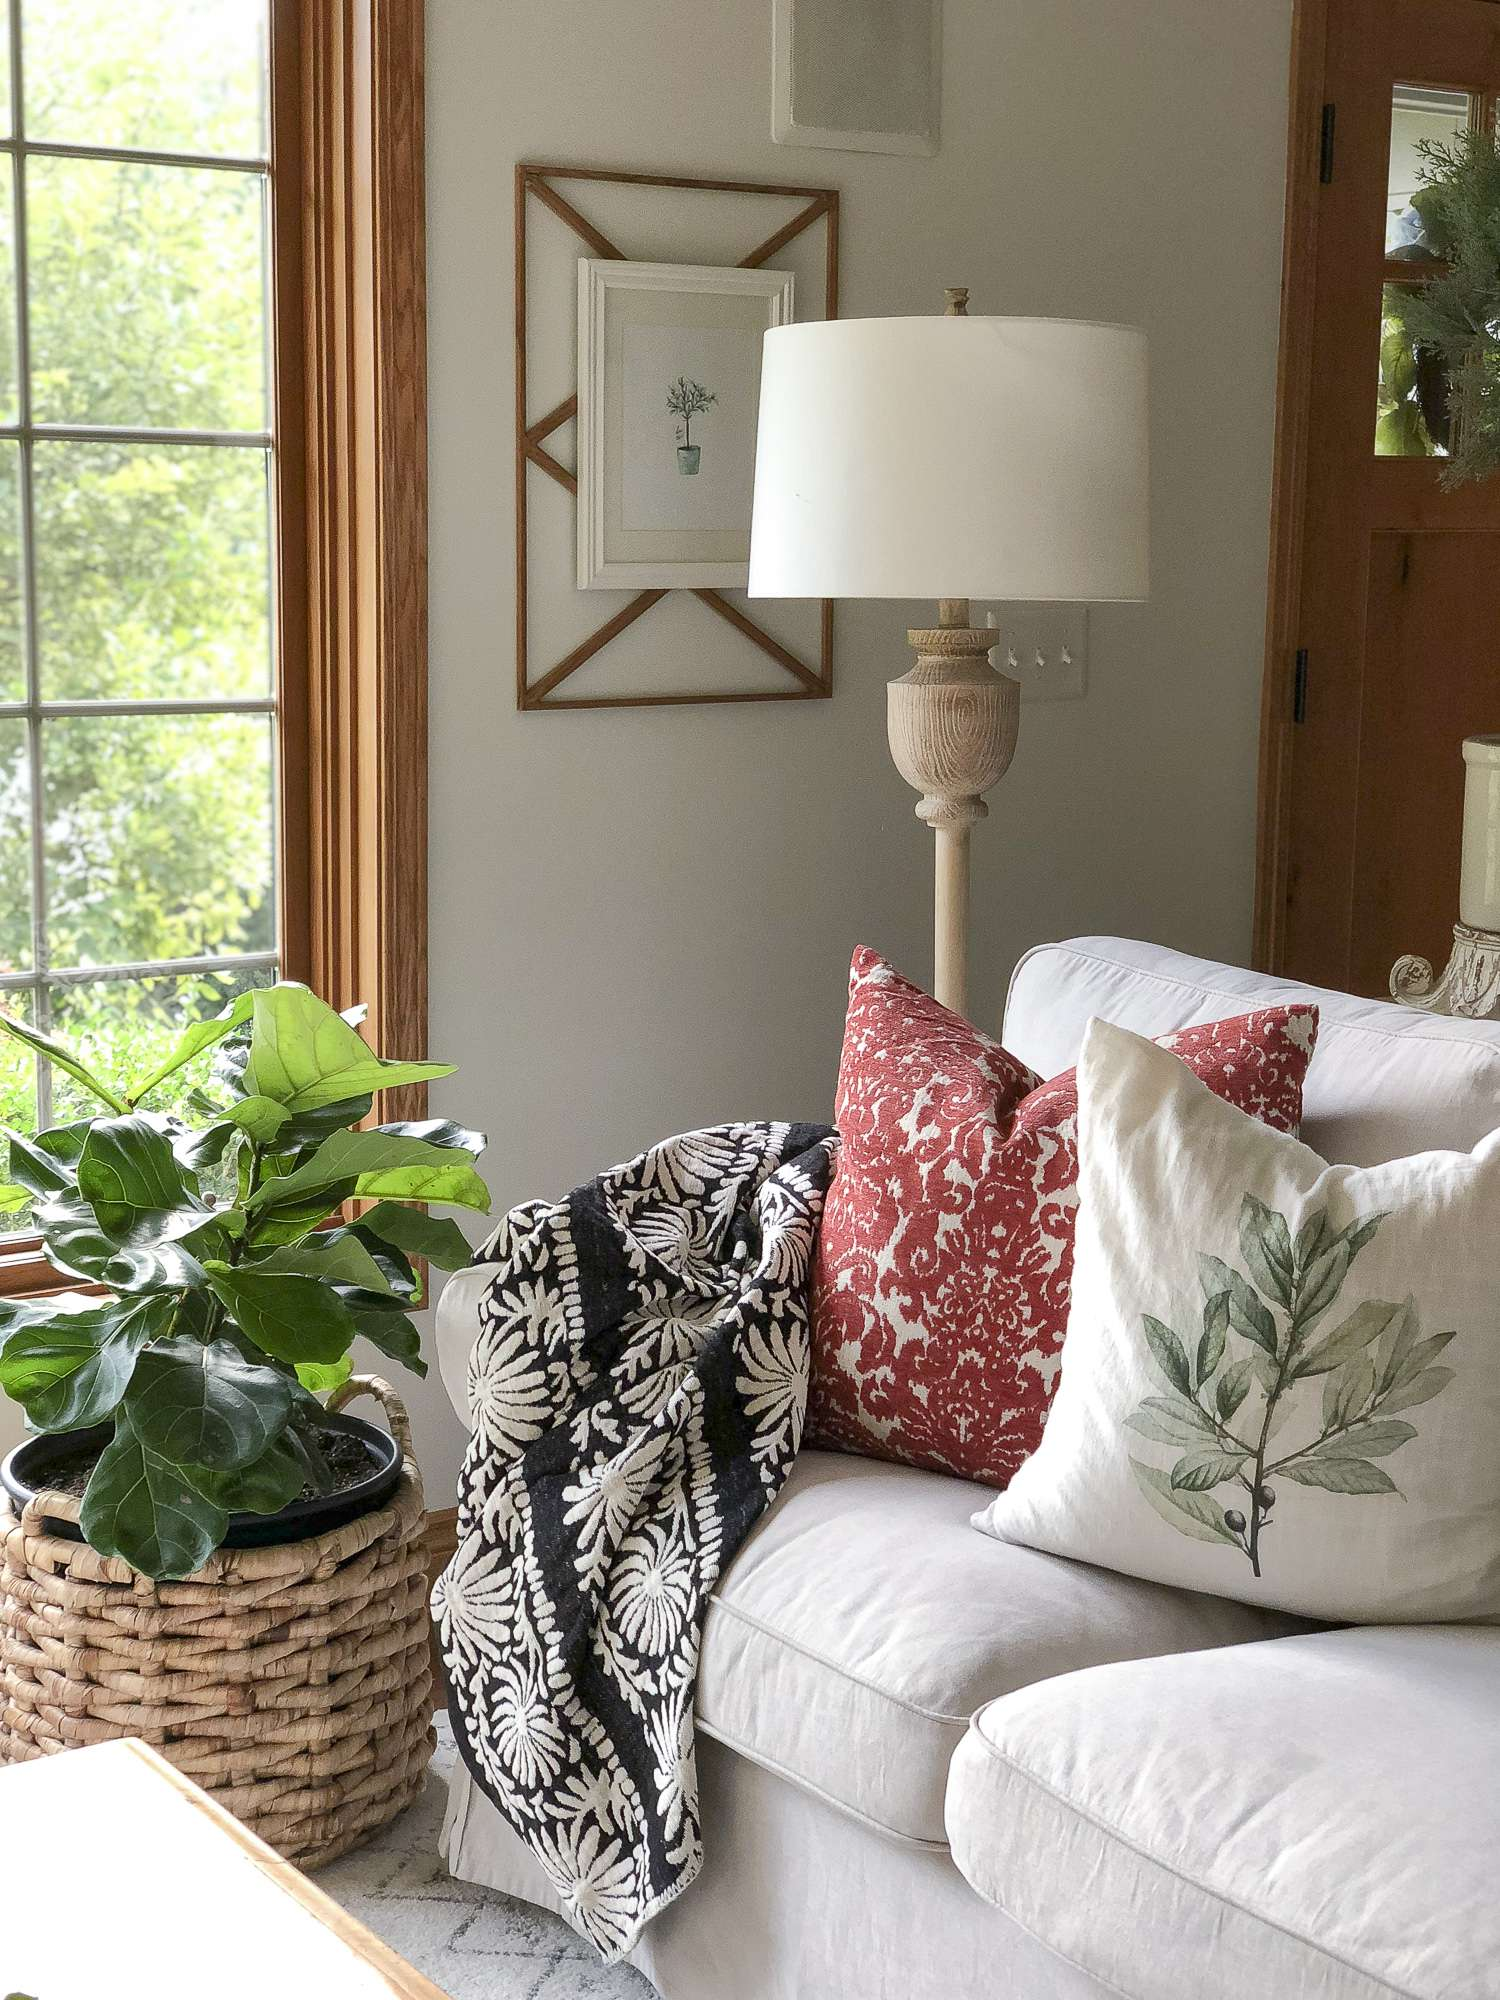 As summer eases into fall I've gathered some beautiful decor that spans the seasons! It's all about transitioning home decor from summer to fall with ease.